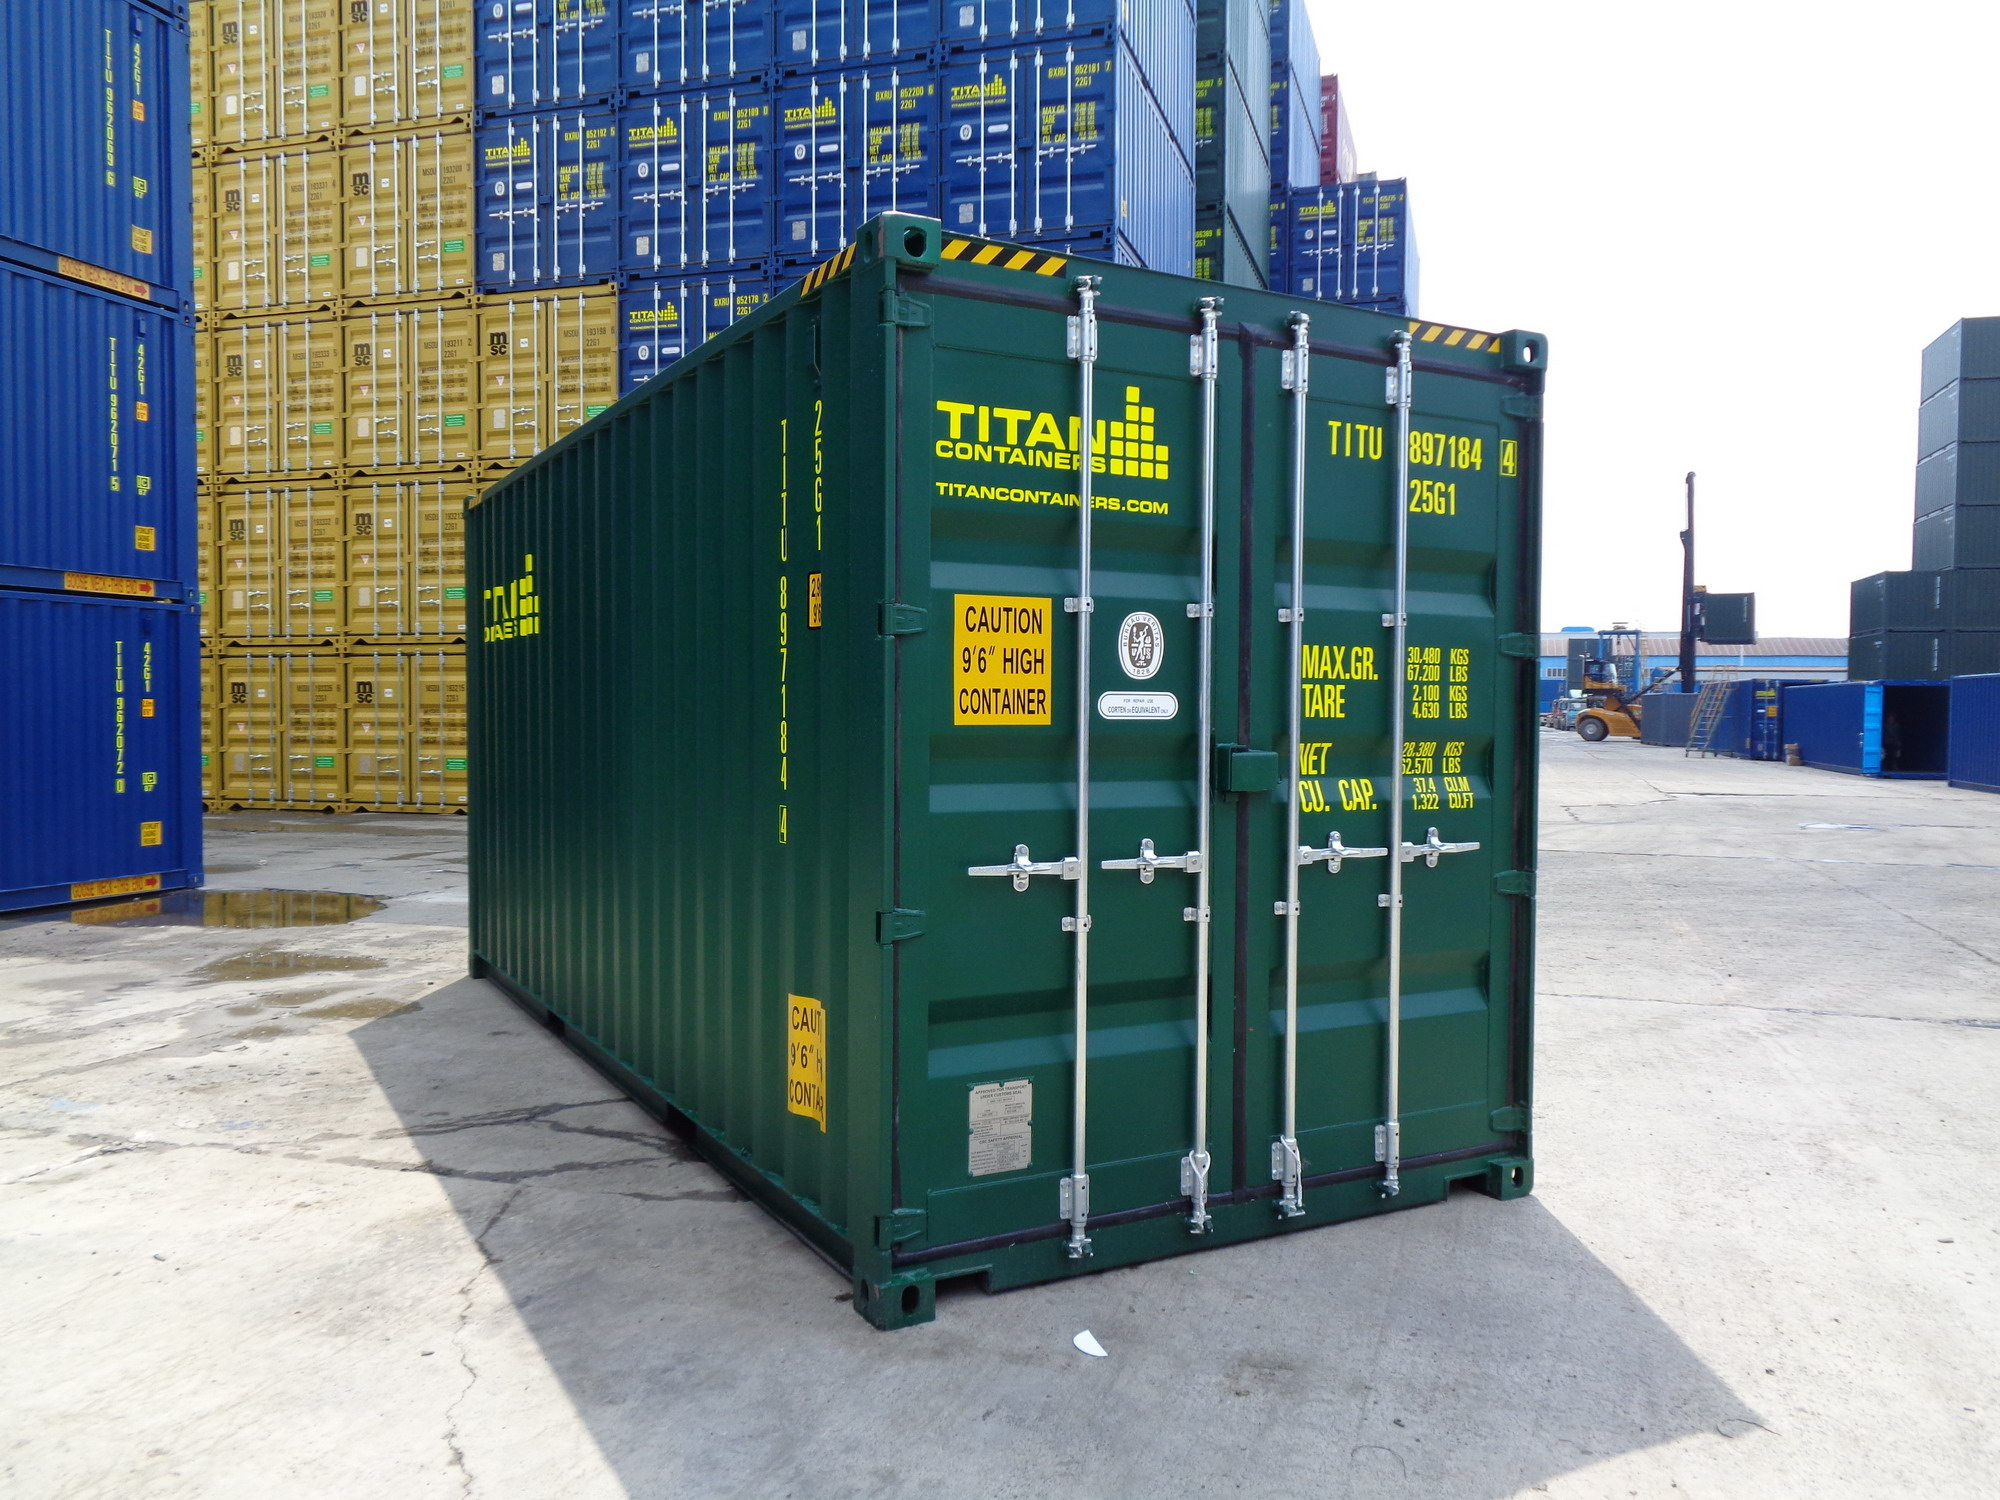 New green 20 high cube dry van Titan Containers